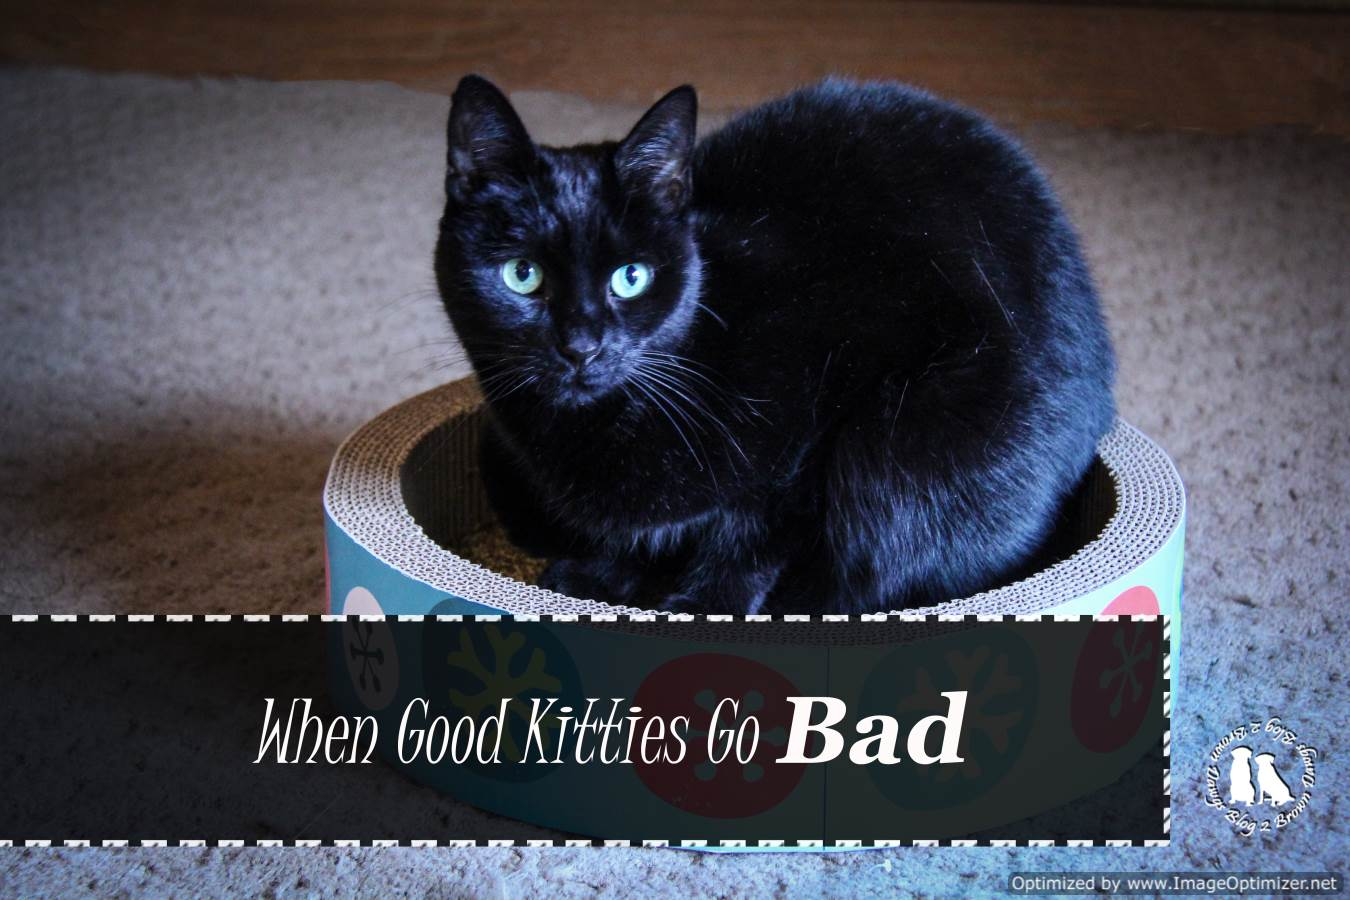 Good Kitties Go Bad